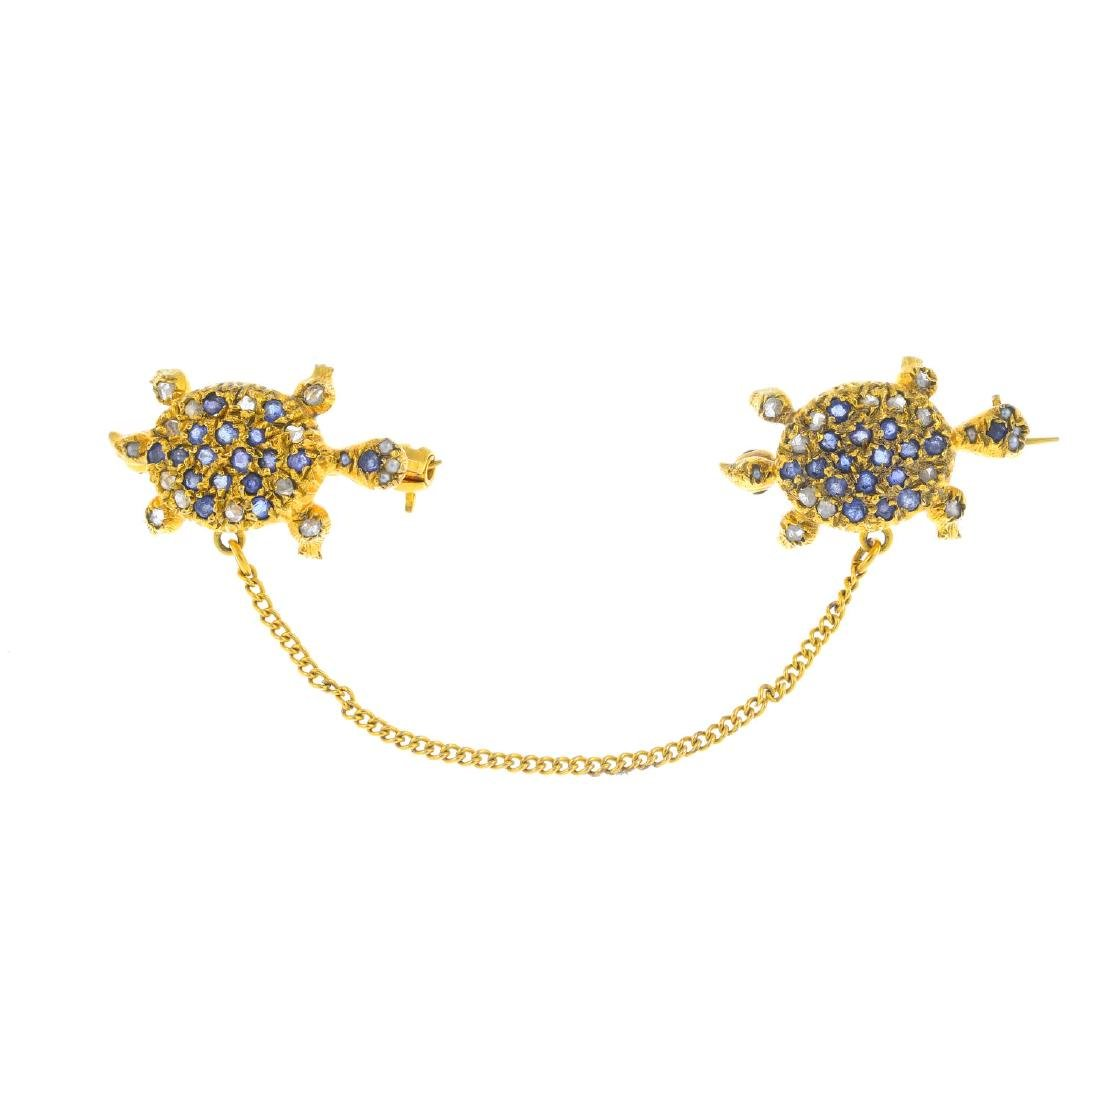 A sapphire, diamond and split pearl brooch. Designed as